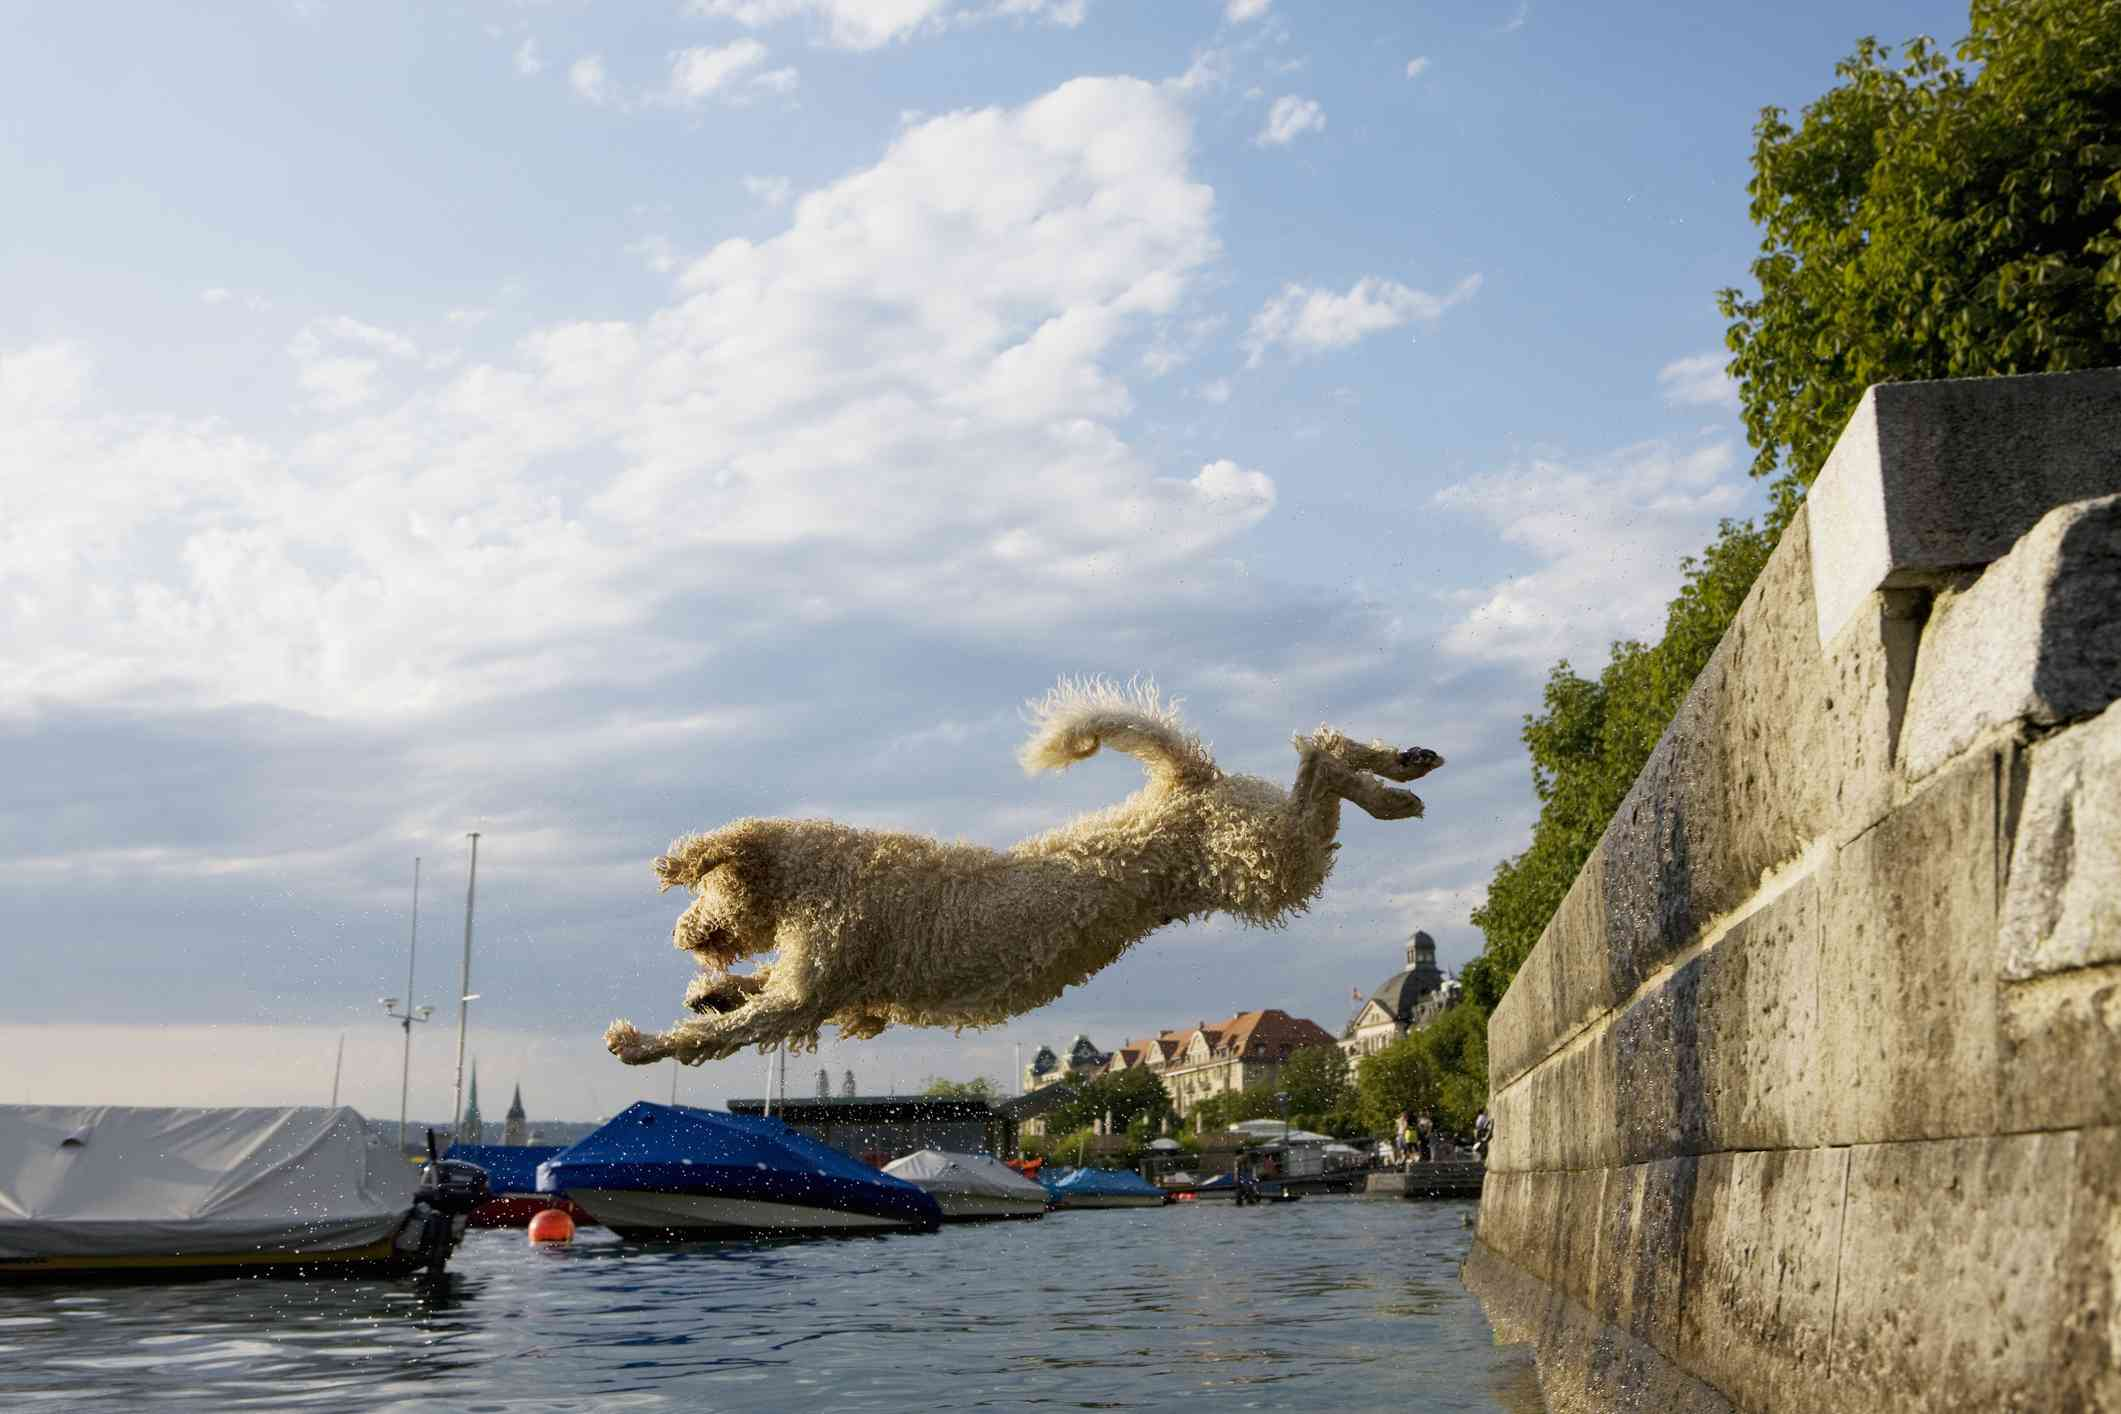 Portuguese water dog leaping into water